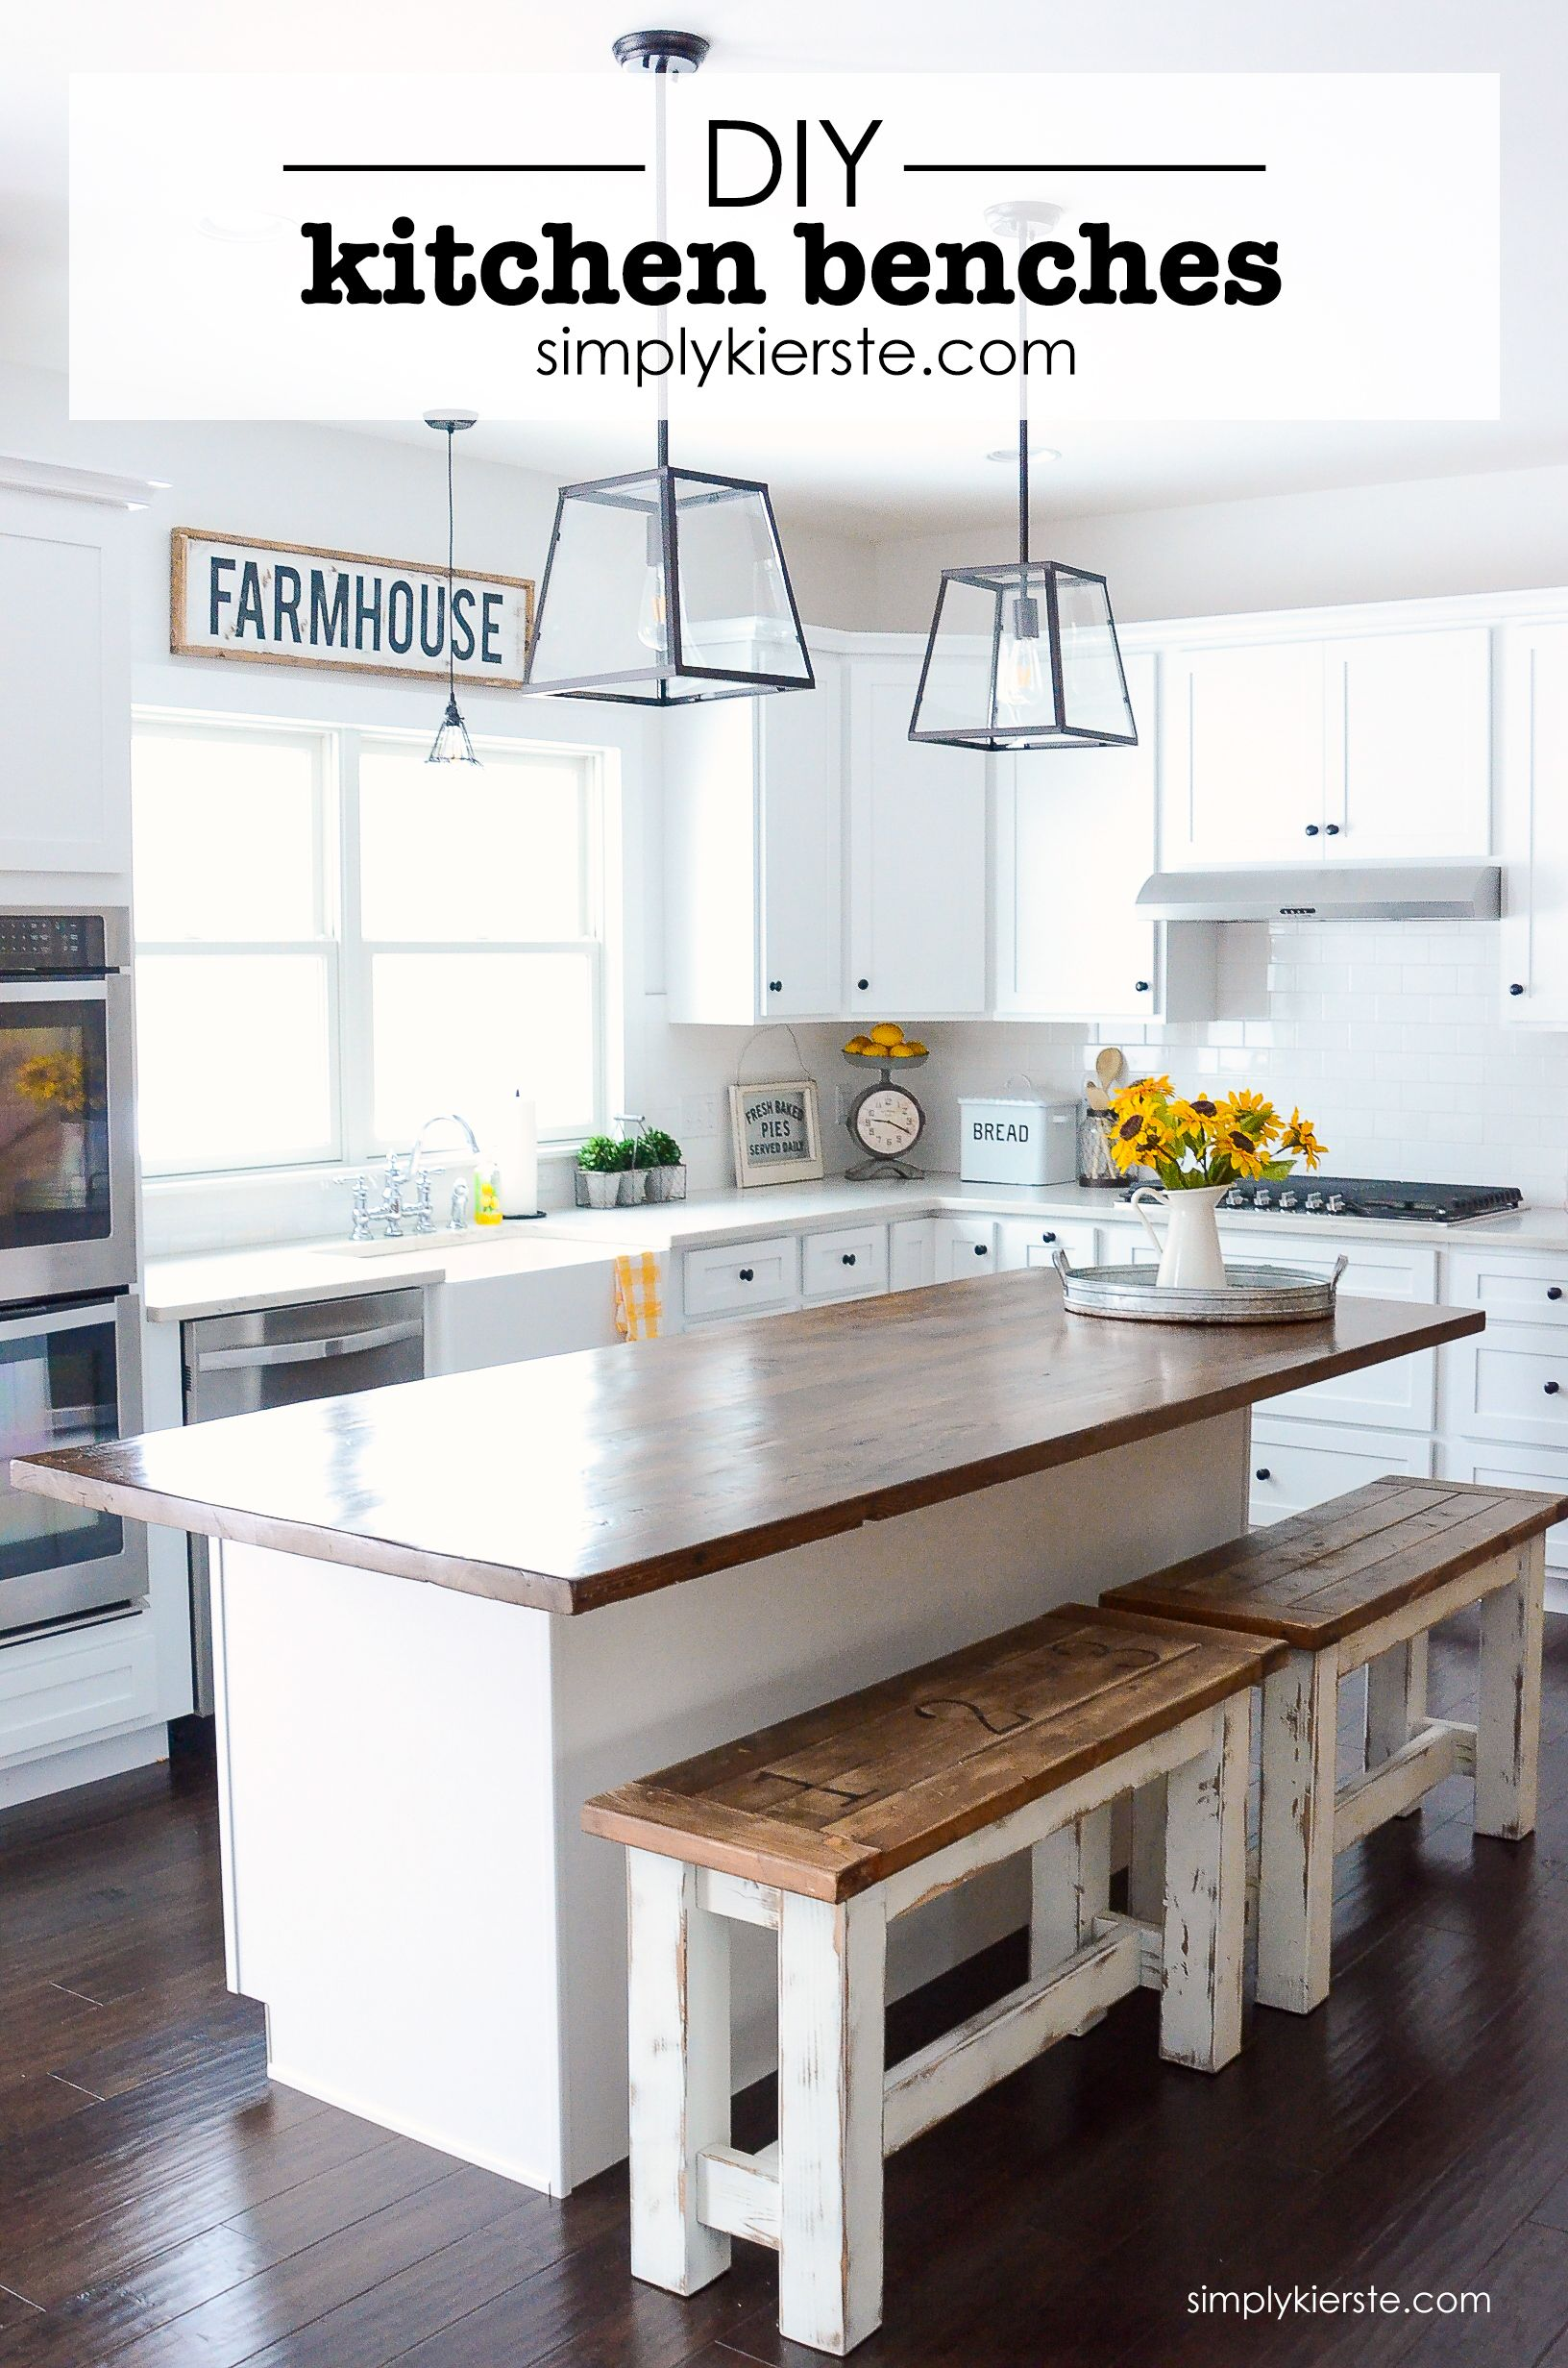 Diy Kitchen Benches Budget Kitchen Ideas Farmhouse Style Home